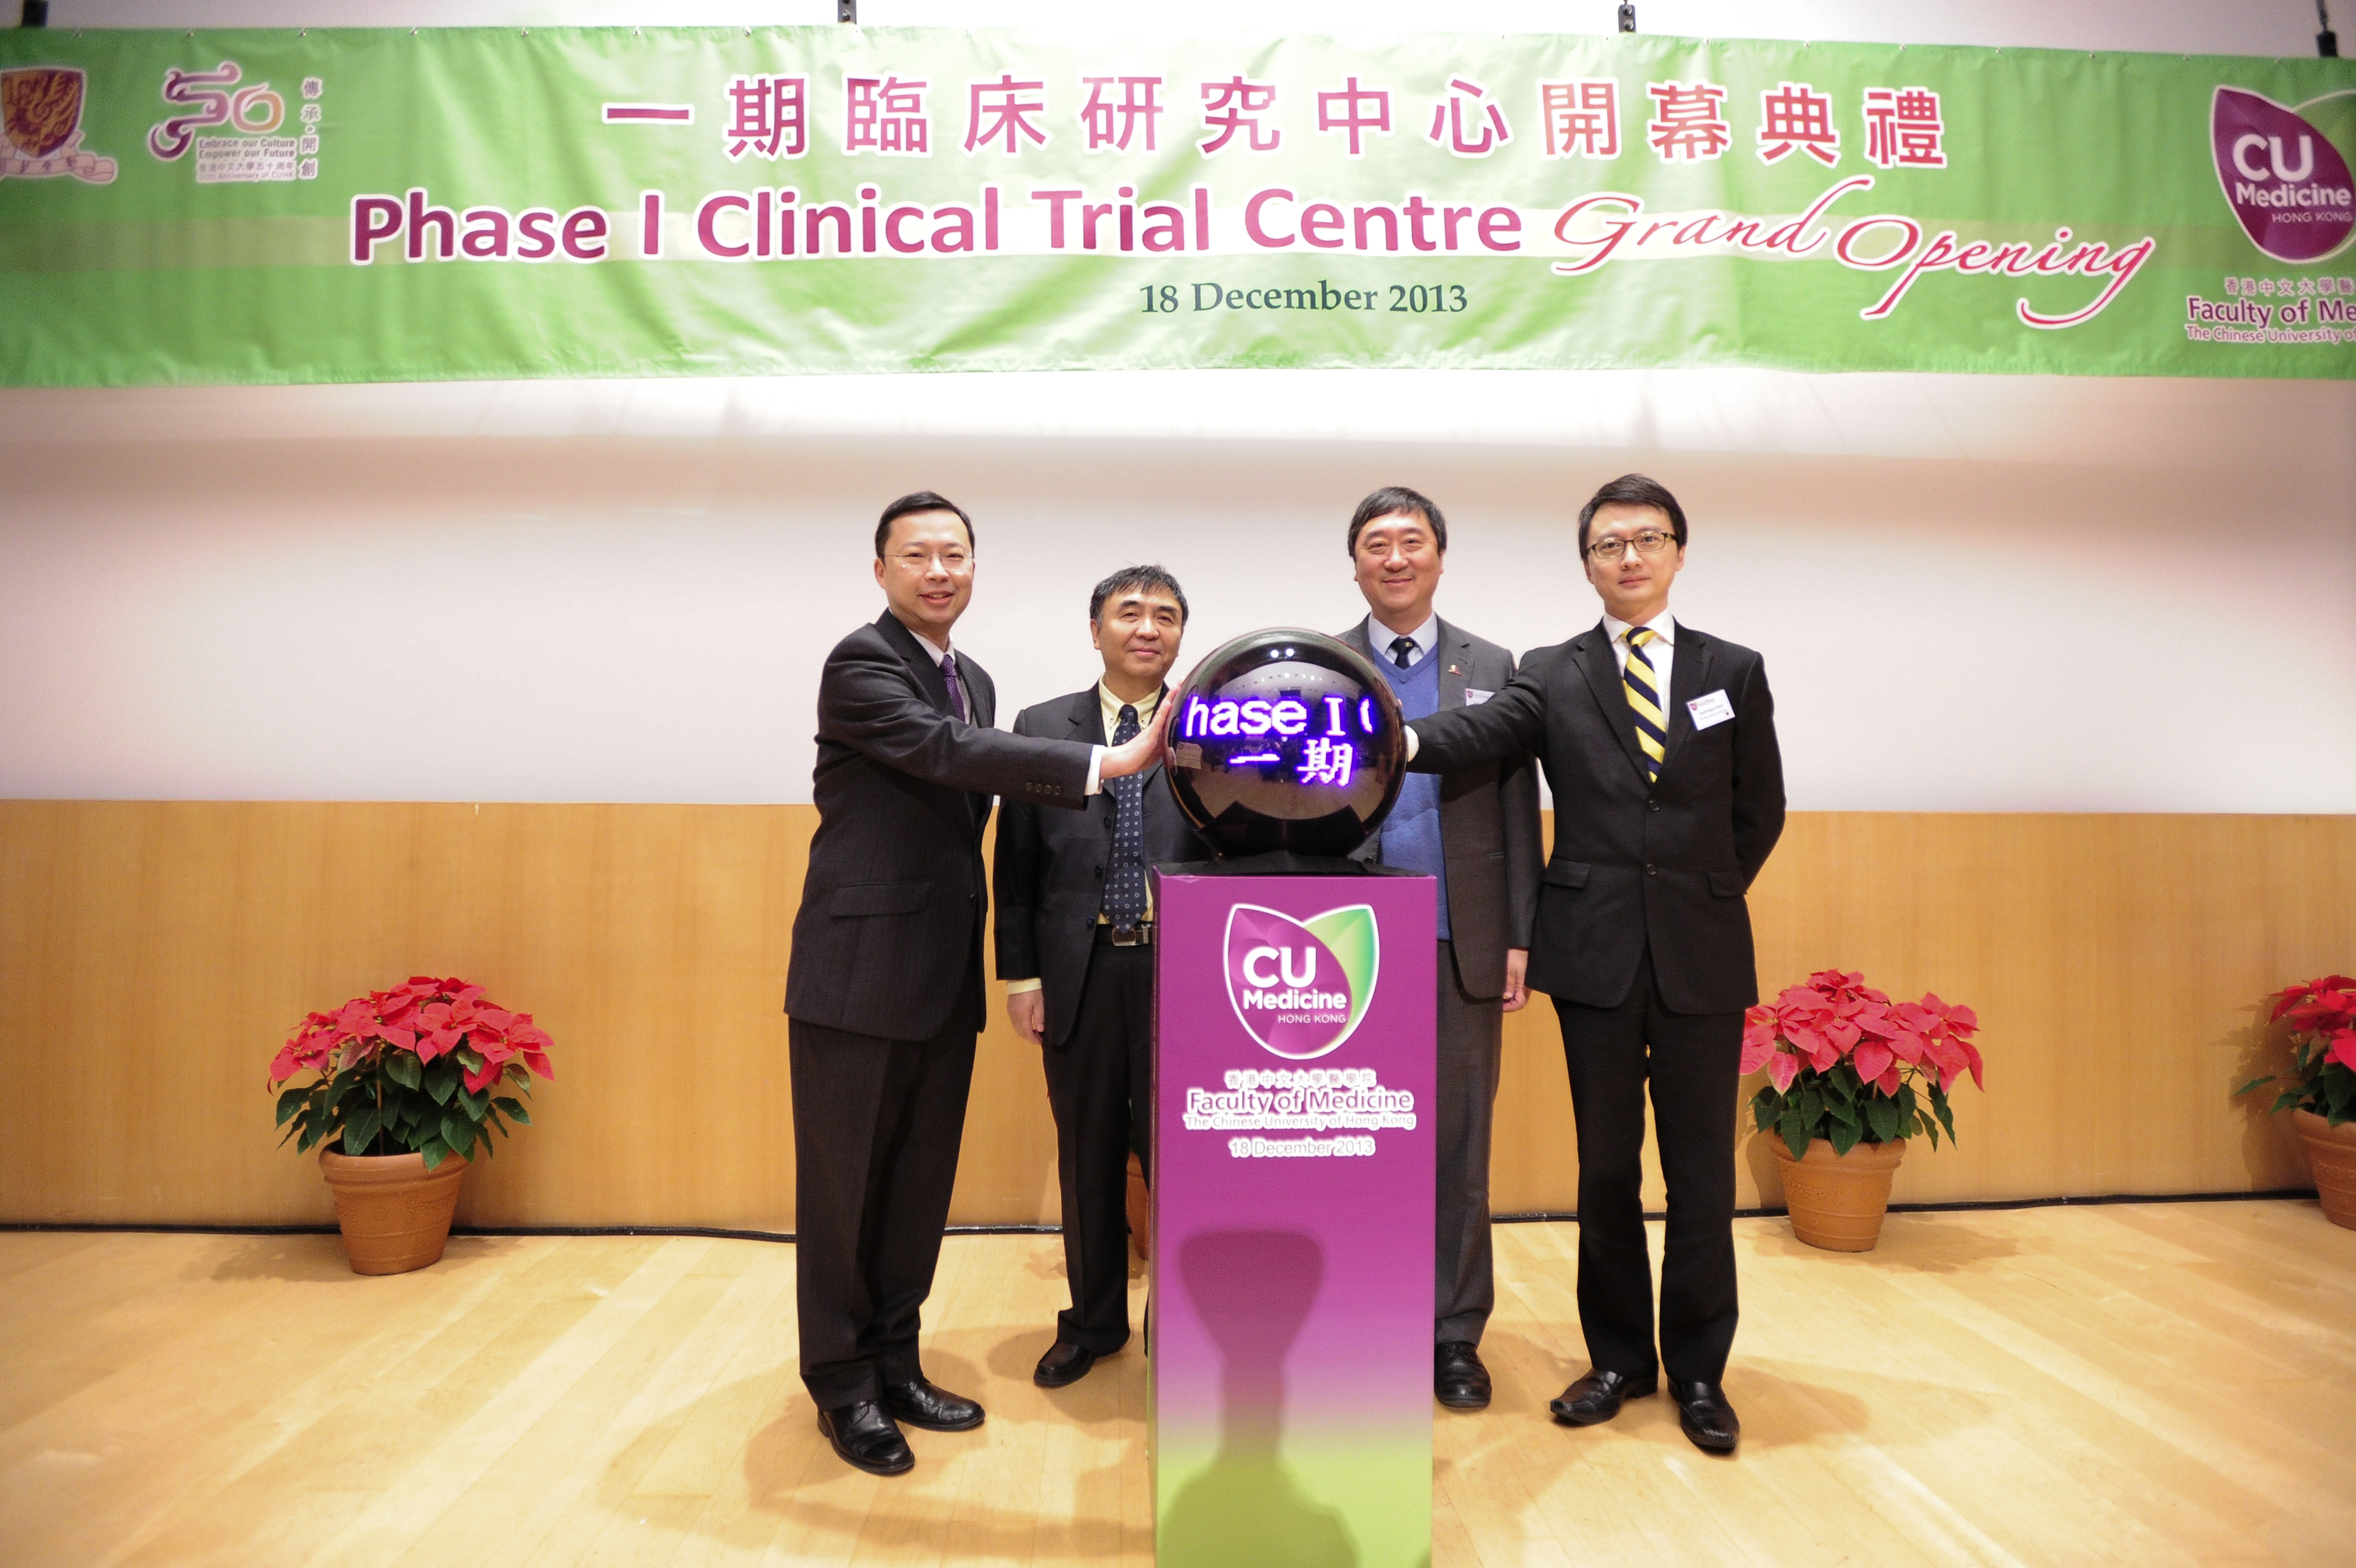 (From left) Prof. Anthony T.C. Chan, Chief Director, Phase I Clinical Trial Centre, CUHK; Prof. Jiang Ji, Director, Phase I Unit, Clinical Pharmacology Research Center, Peking Union Medical College Hospital; Prof. Joseph J.Y. Sung, Vice-Chancellor and President, CUHK; and Prof. Francis K.L. Chan, Dean, Faculty of Medicine, CUHK officiate at the Grand Opening of CUHK Phase I Clinical Trial Centre.